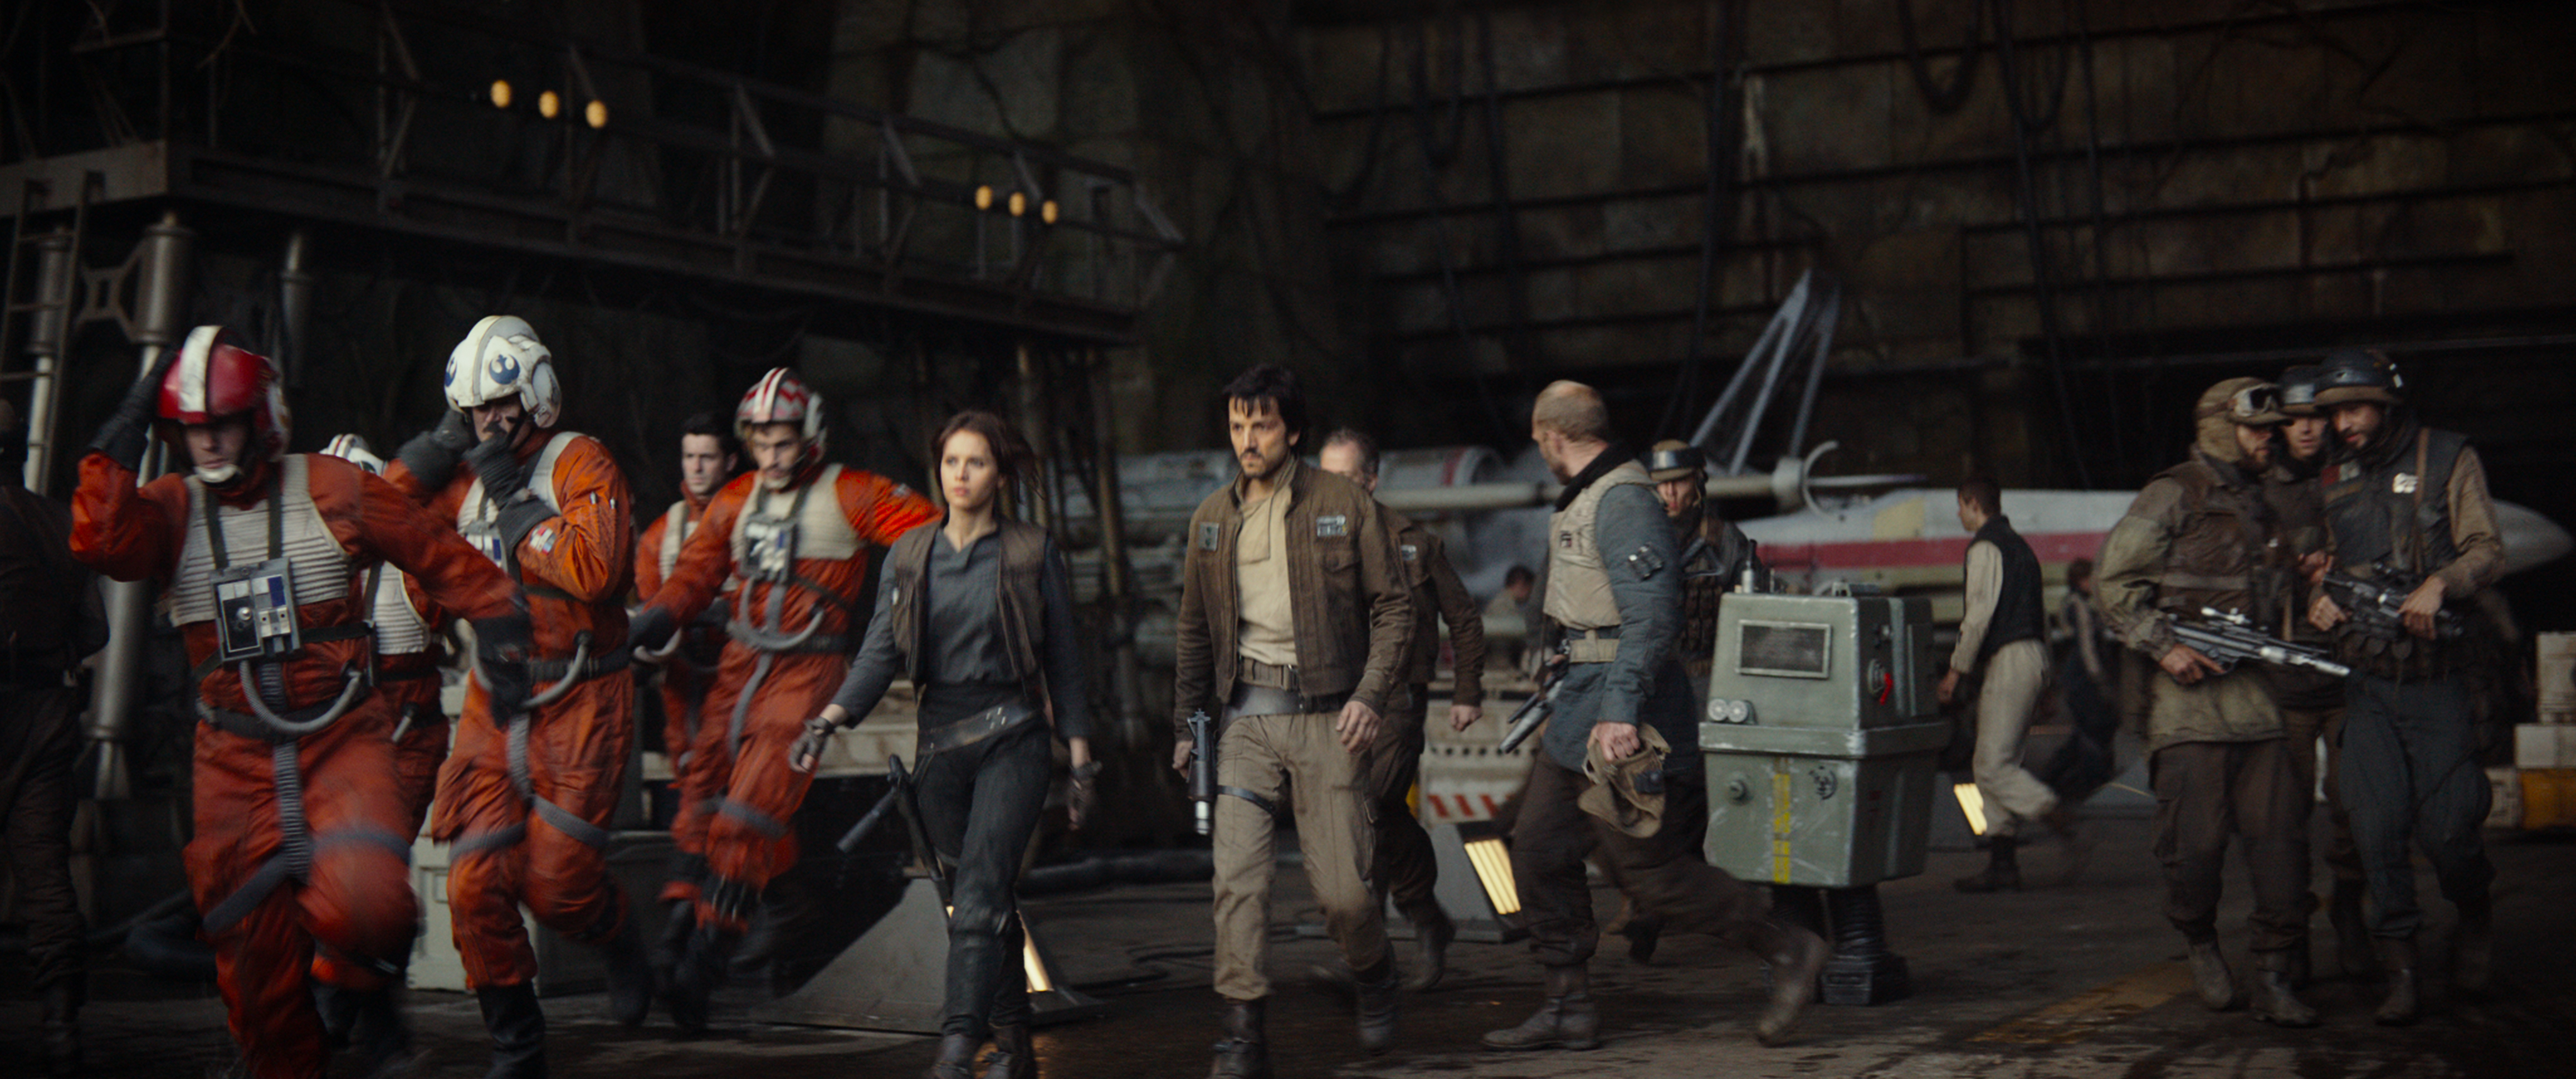 Rogue One: A Star Wars Story L to R: (Felicity Jones) & (Diego Luna) Ph: Film Frame ©Lucasfilm LFL